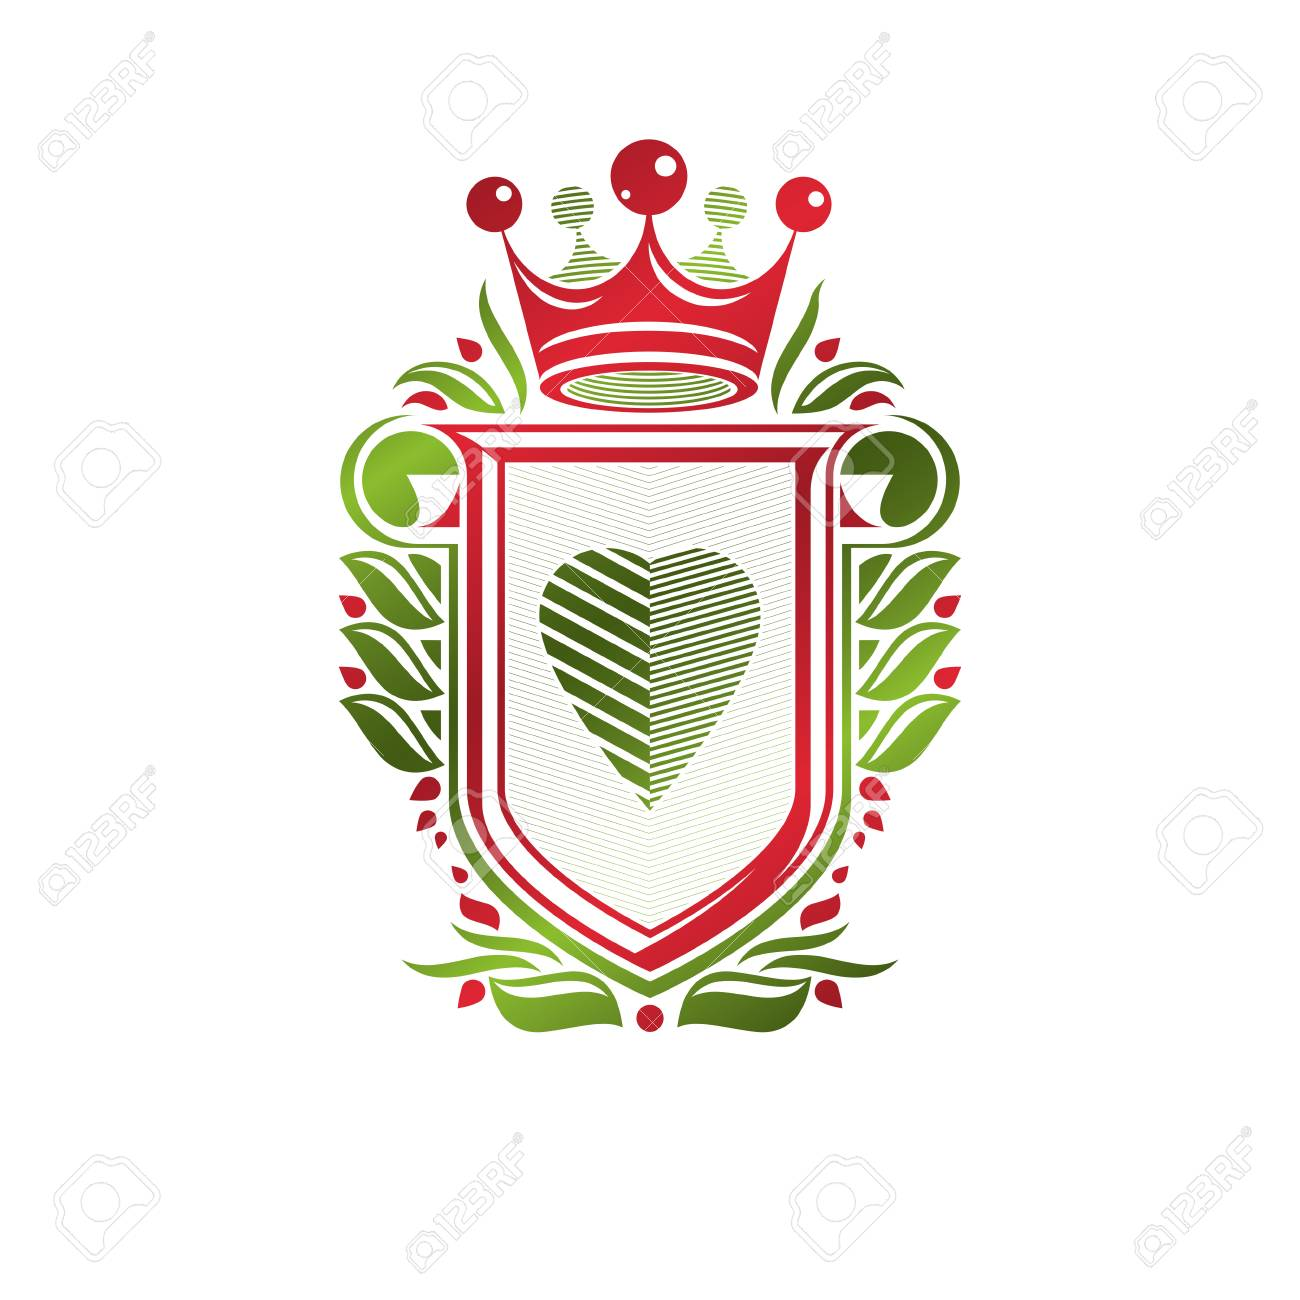 The heraldic lily is the favorite emblem of France 93